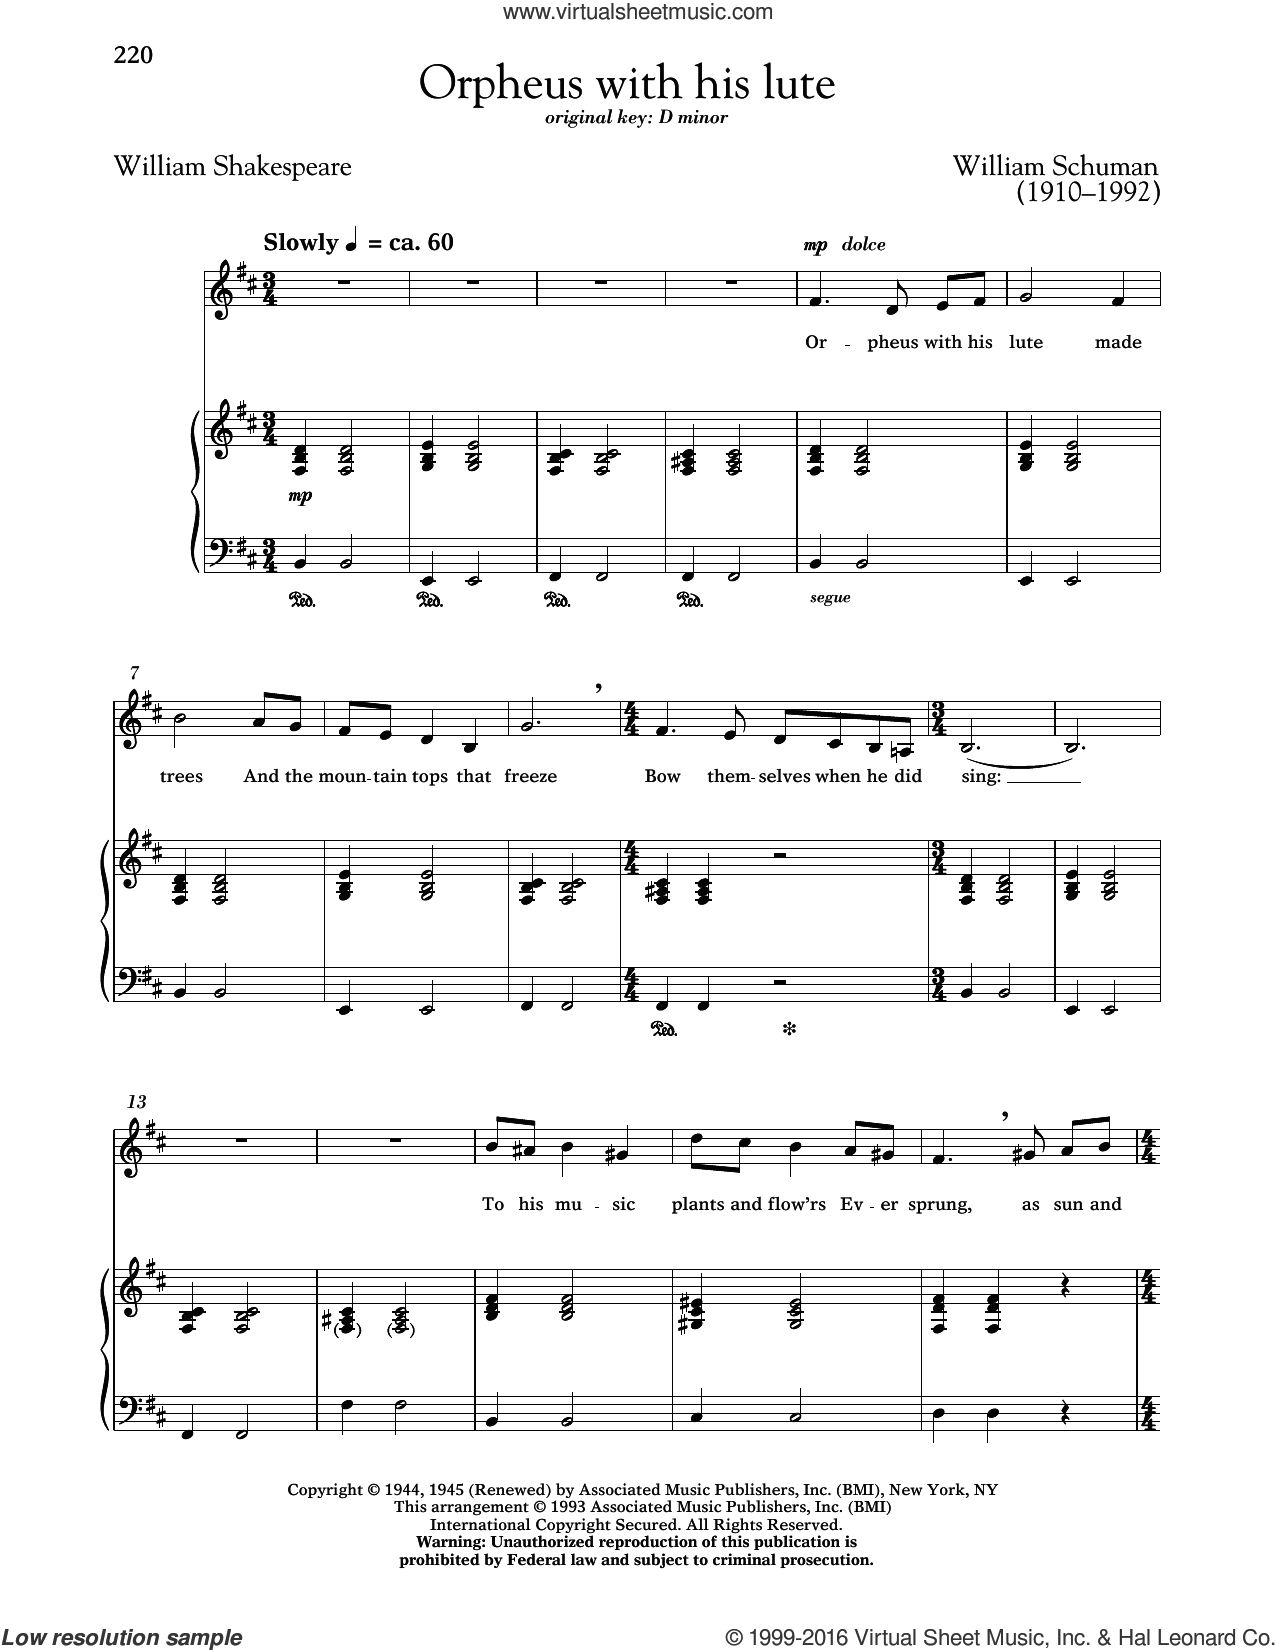 Orpheus With His Lute sheet music for voice and piano (Low ) by William Schuman, Richard Walters and William Shakespeare, classical score, intermediate. Score Image Preview.